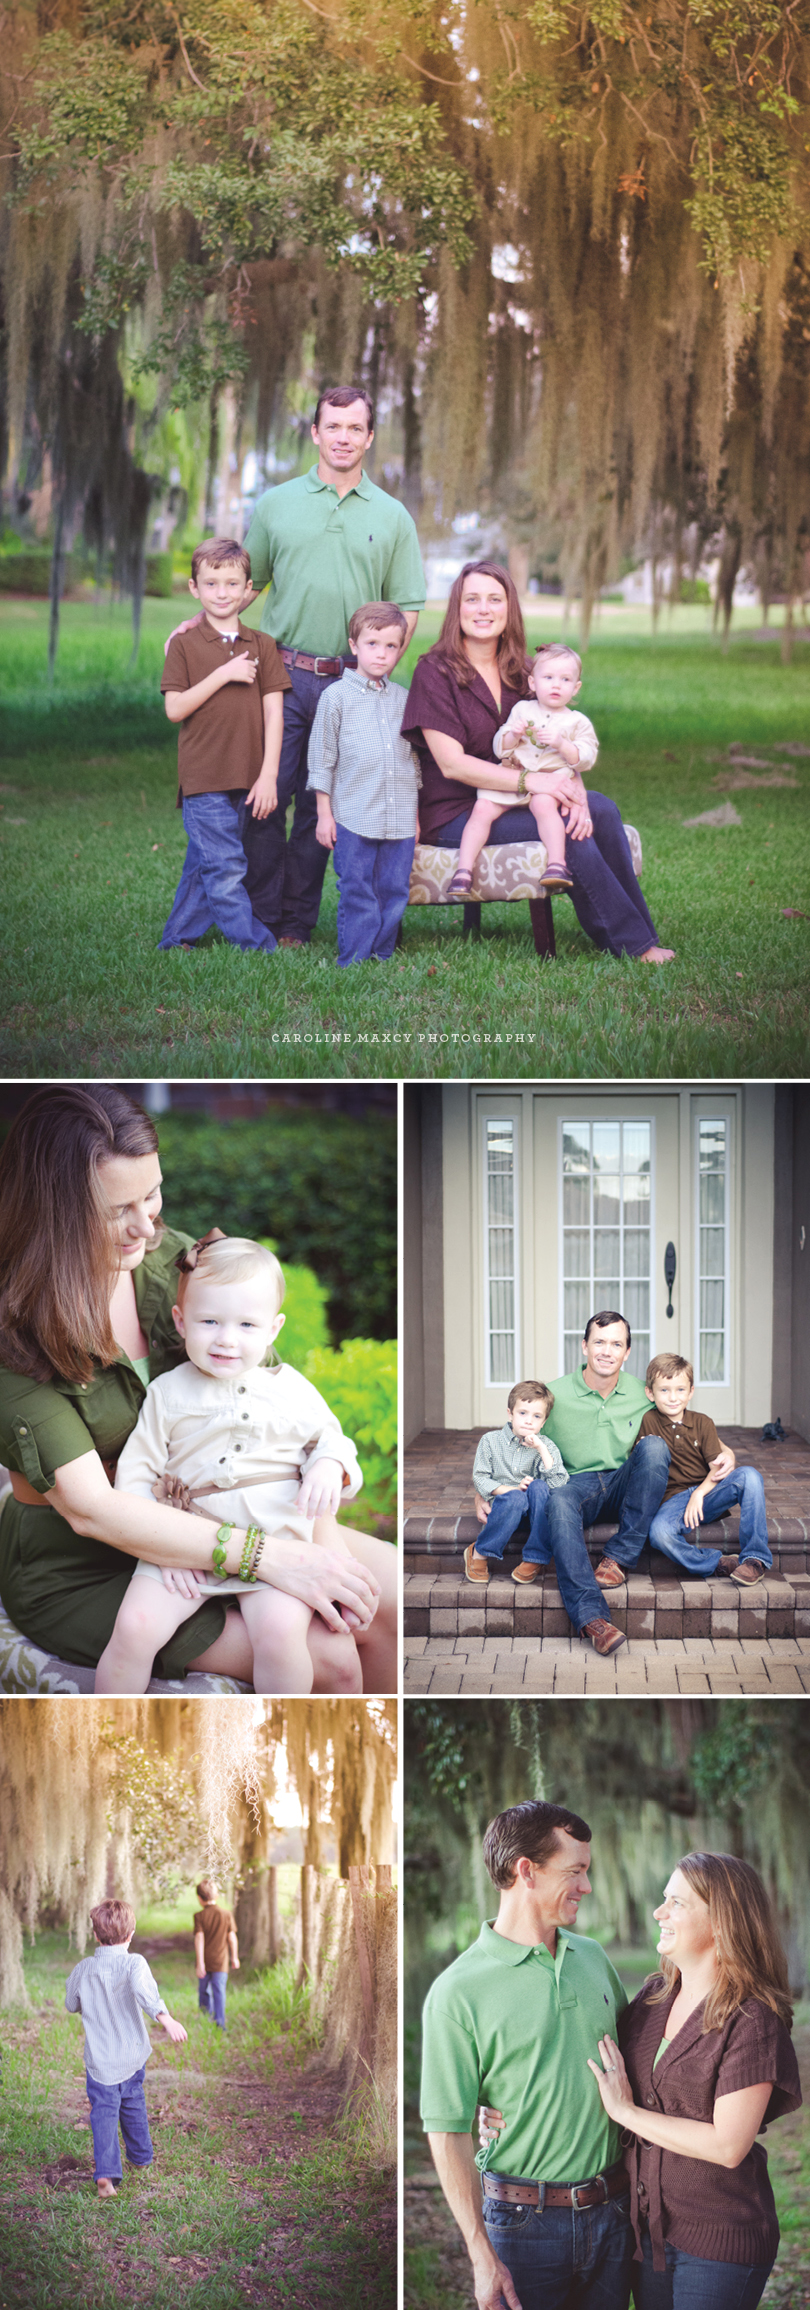 2012_CarolineMaxcyPhotography_Fall_Recap8